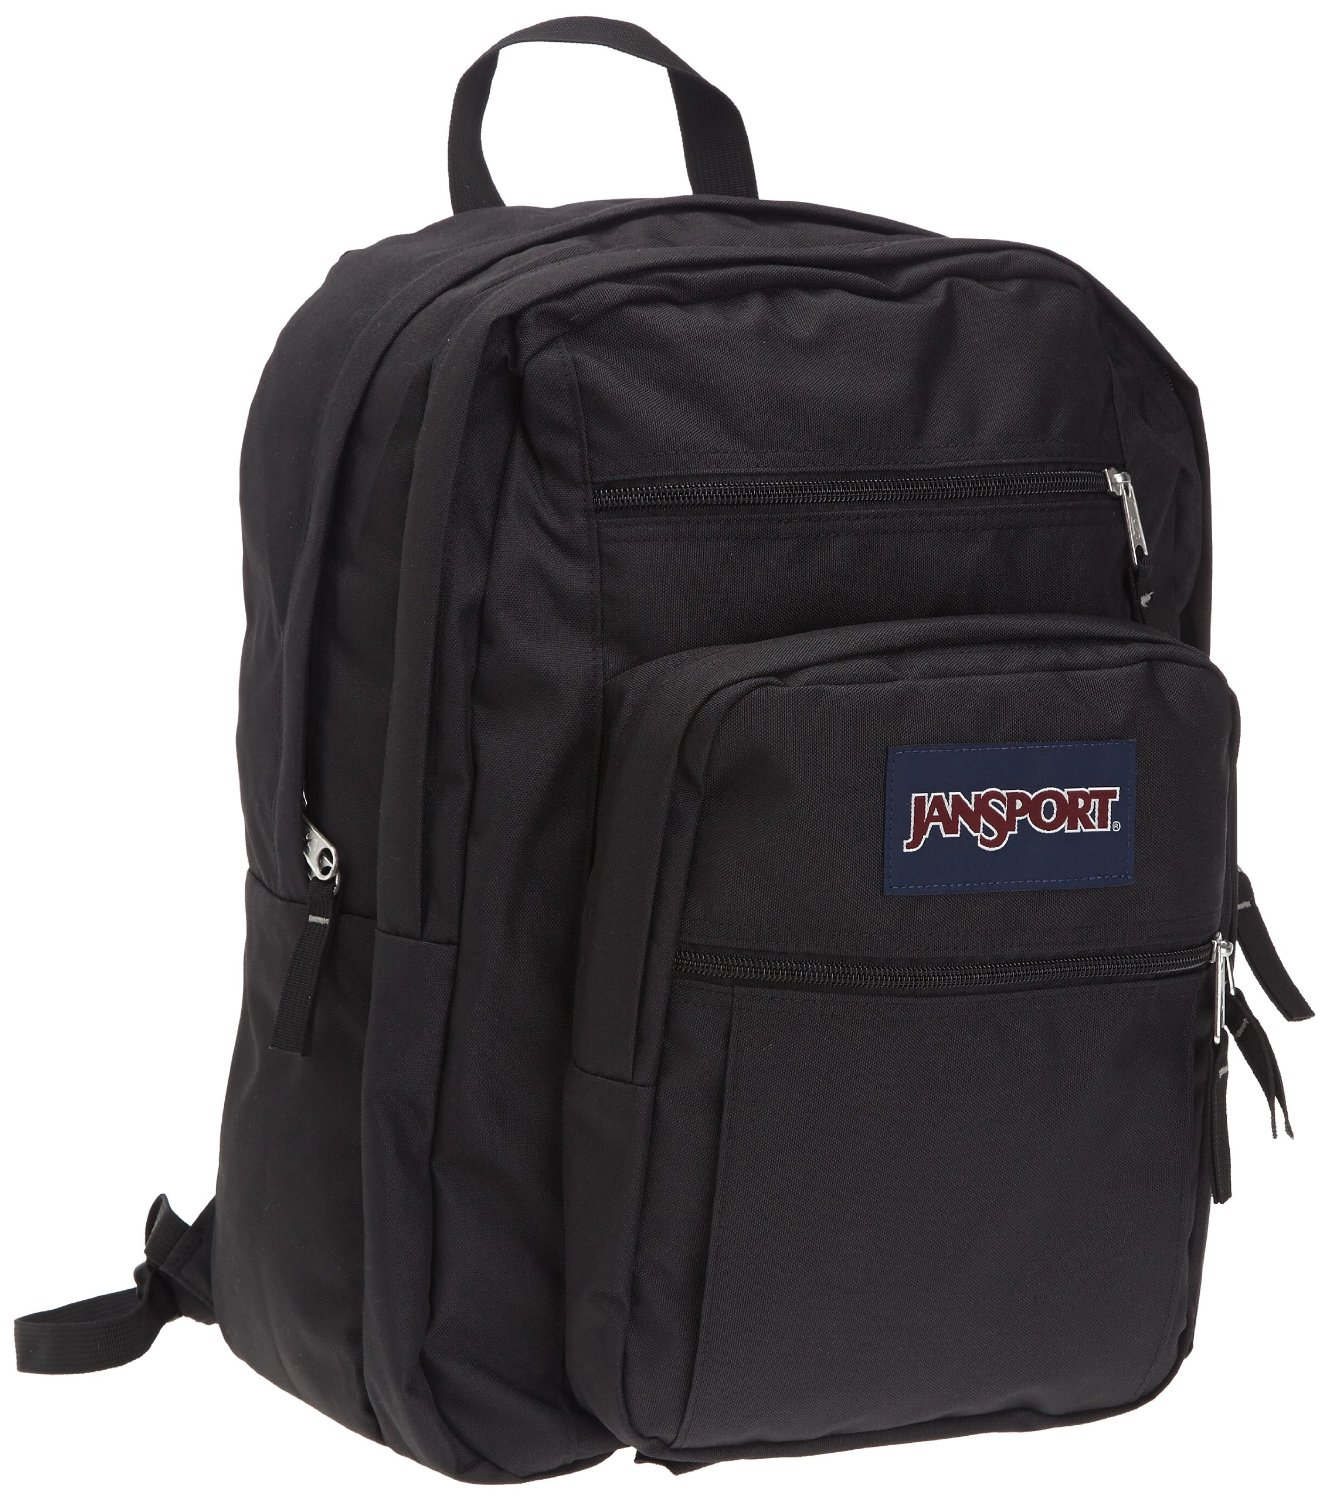 jansport black backpacks crazy backpacks